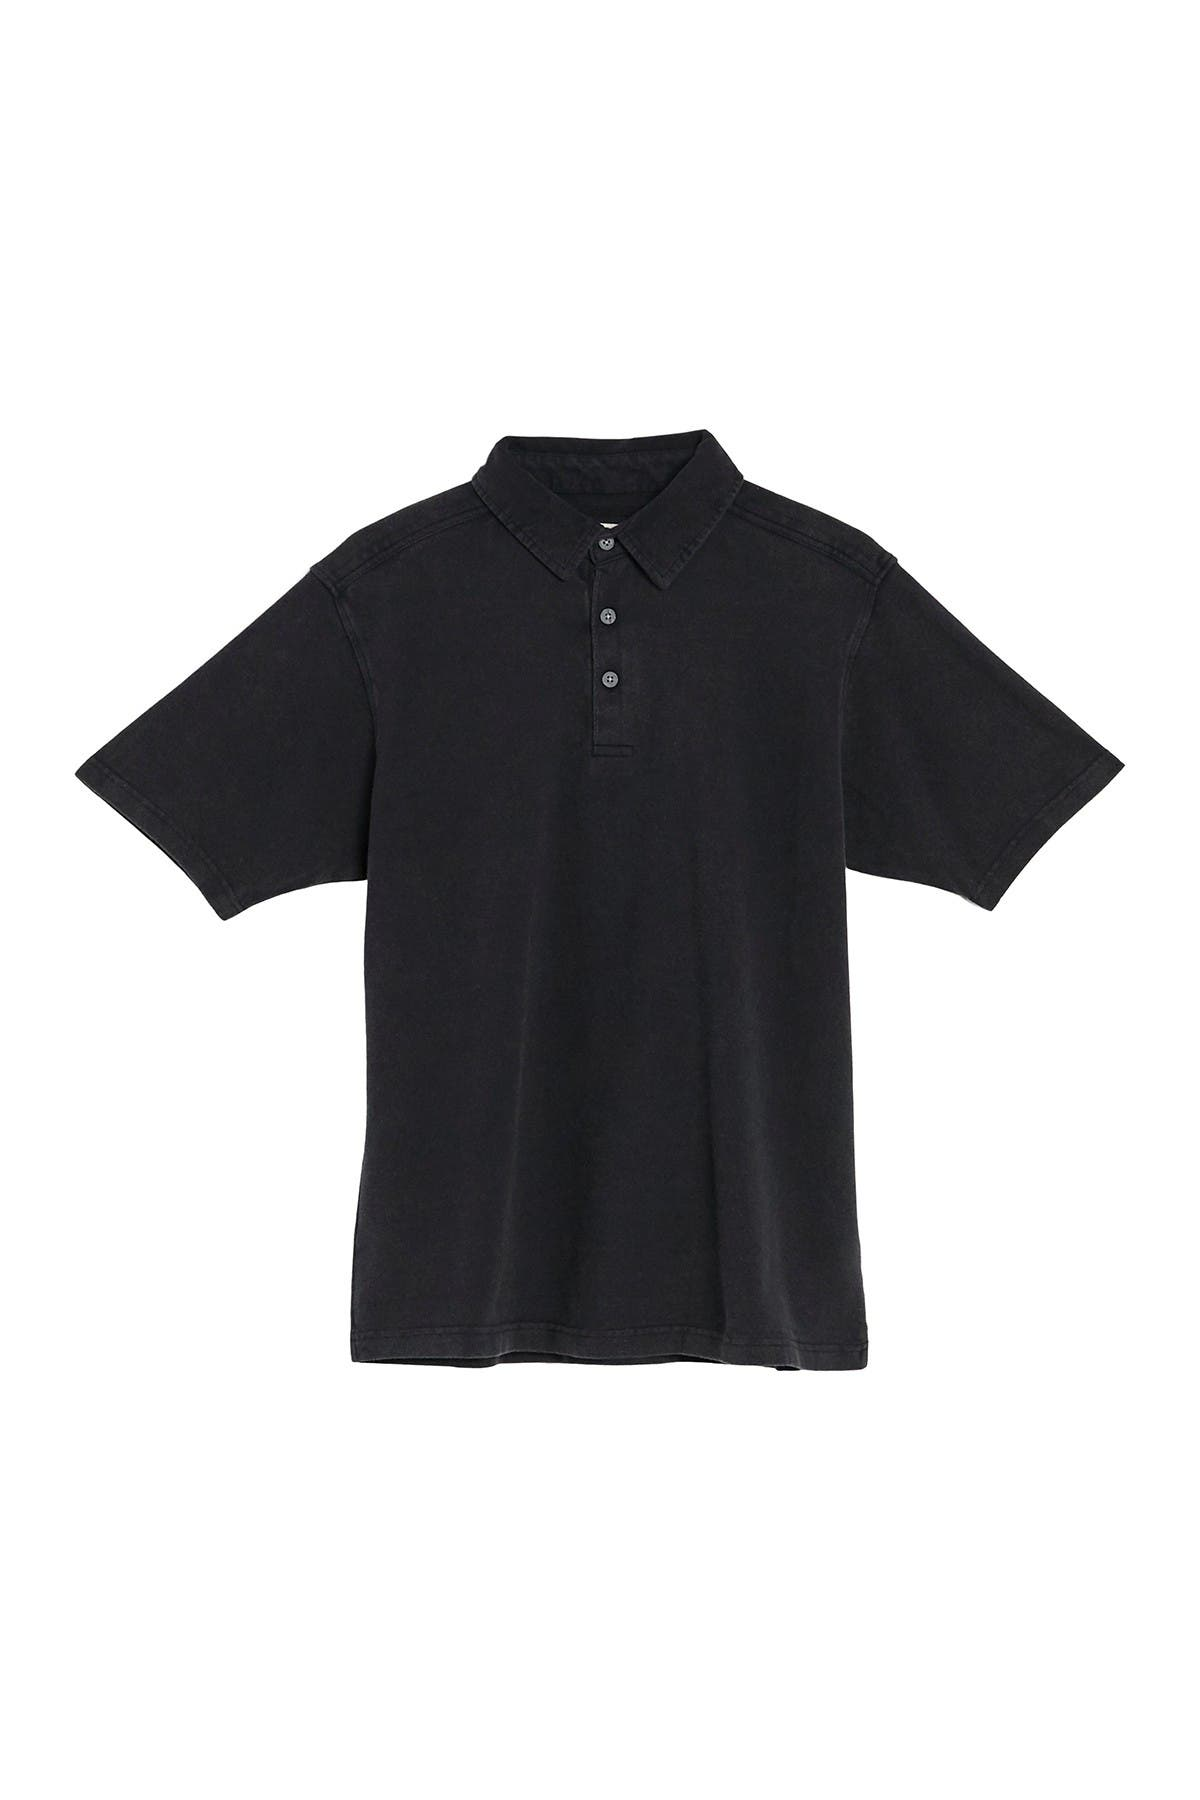 Image of COASTAORO Indy Pique Knit Short Sleeve Polo